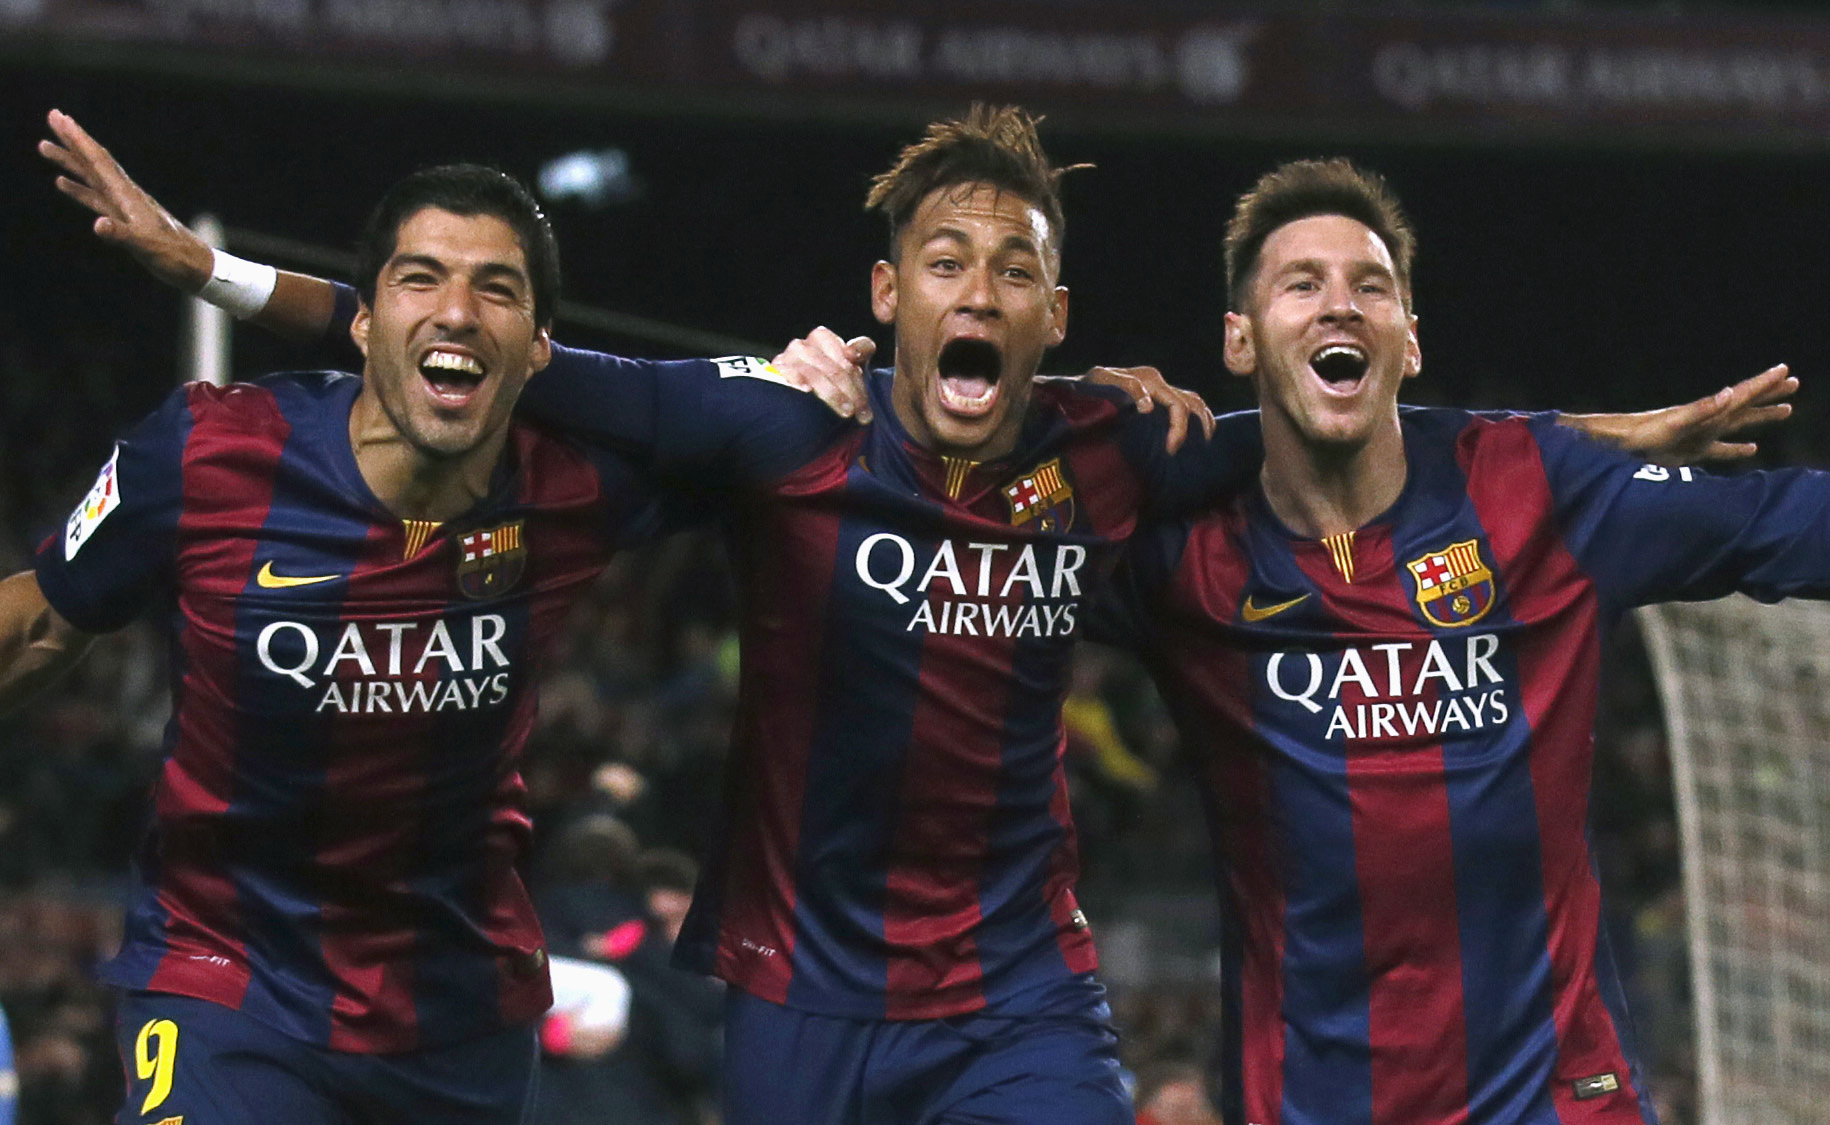 (L-R) Barcelona's Luis Suarez, Neymar and Lionel Messi celebrate a goal against Atletico Madrid during their Spanish First Division soccer match at Camp Nou stadium in Barcelona January 11, 2015. REUTERS/Albert Gea (SPAIN - Tags: SPORT SOCCER) - RTR4KYNS